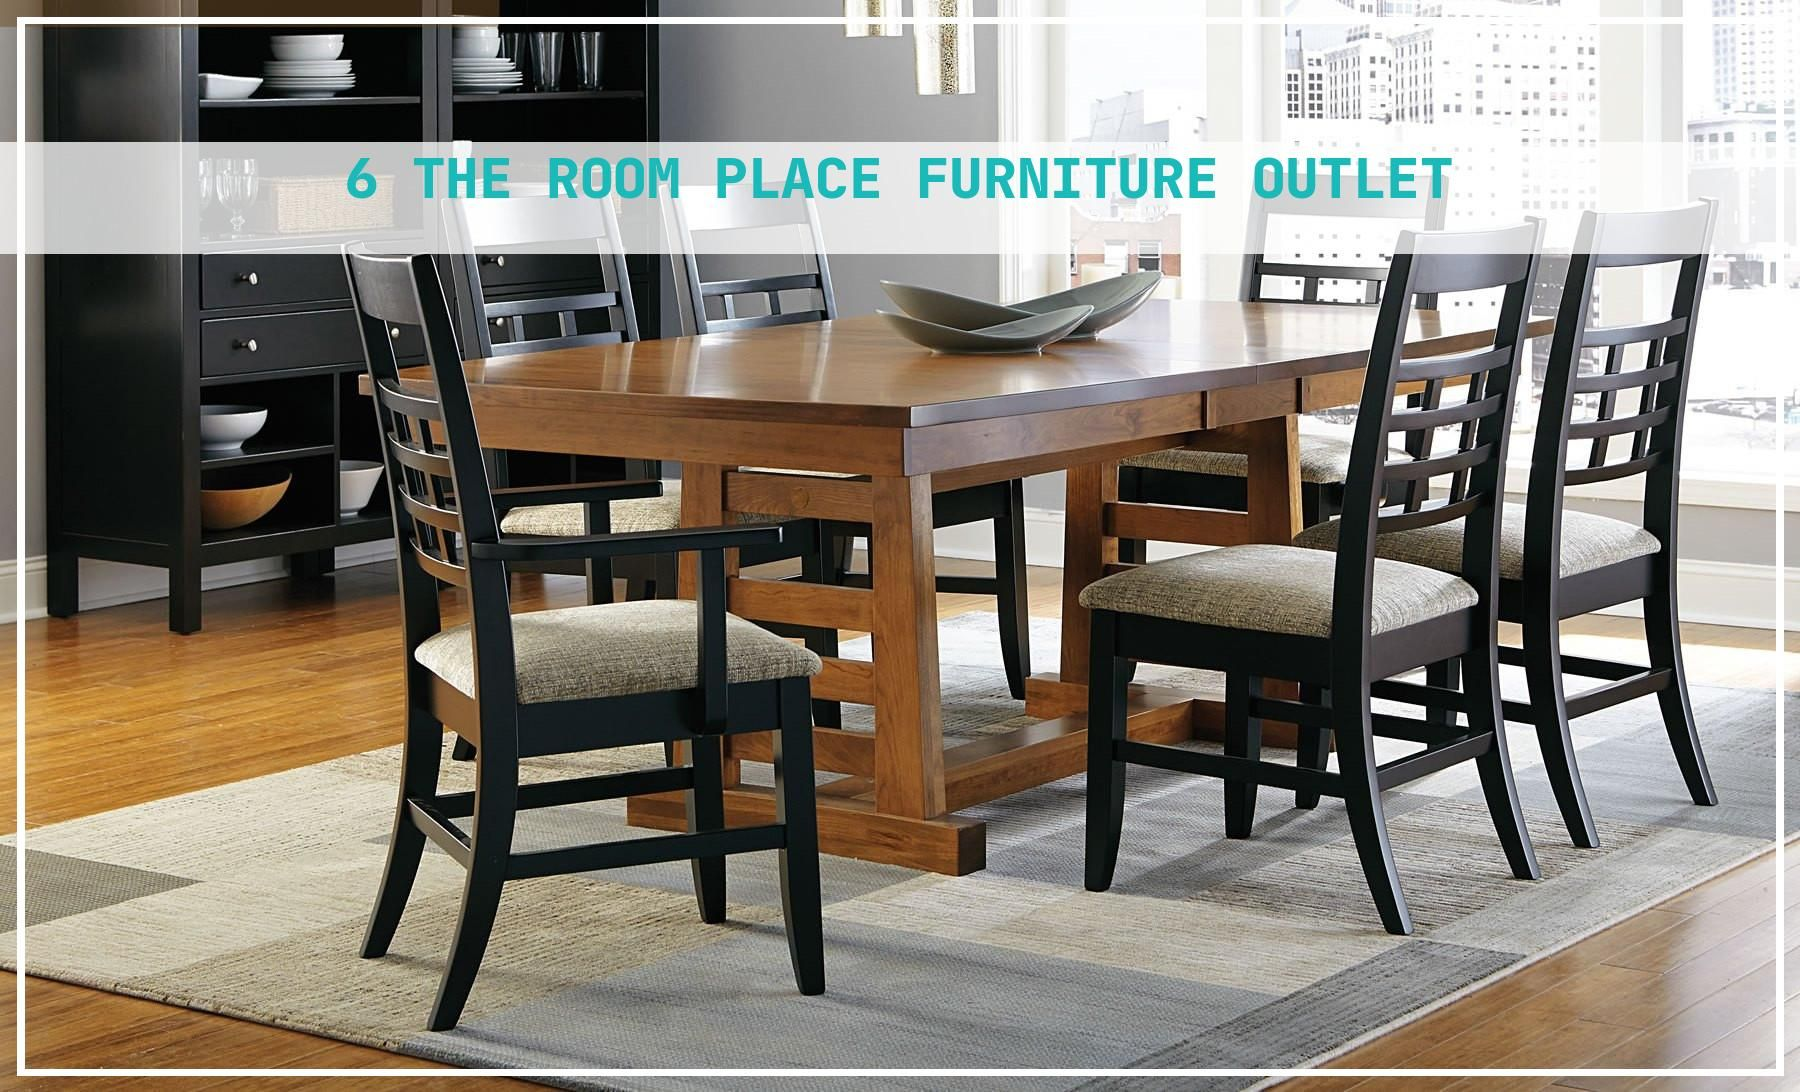 The Room Place Furniture Outlet In 2020 The Room Place Furniture Room Place Furniture #room #place #living #room #sets